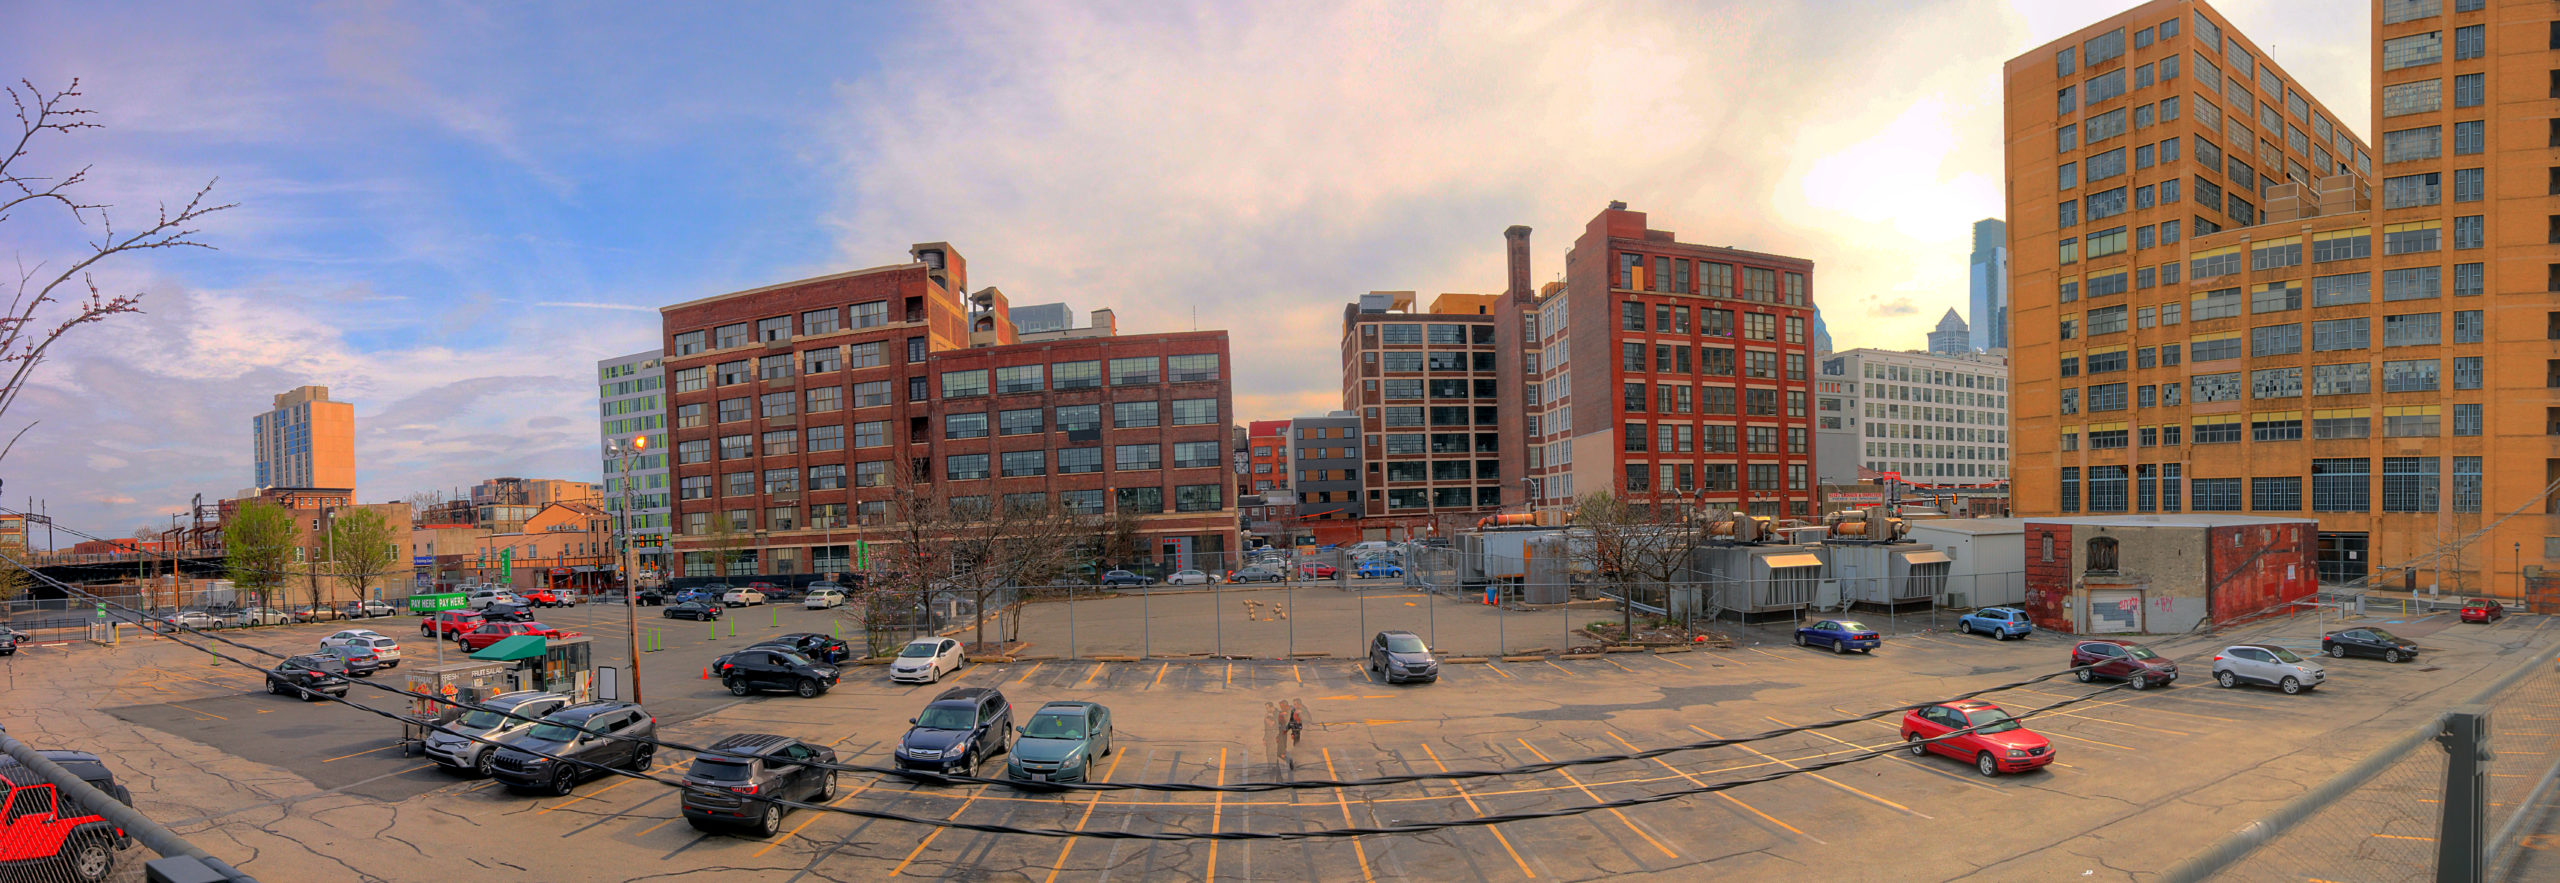 View from the Rail Park, over 13th Street Callowhill District Philadelphia, PA Copyright 2019, Bob Bruhin. All rights reserved.